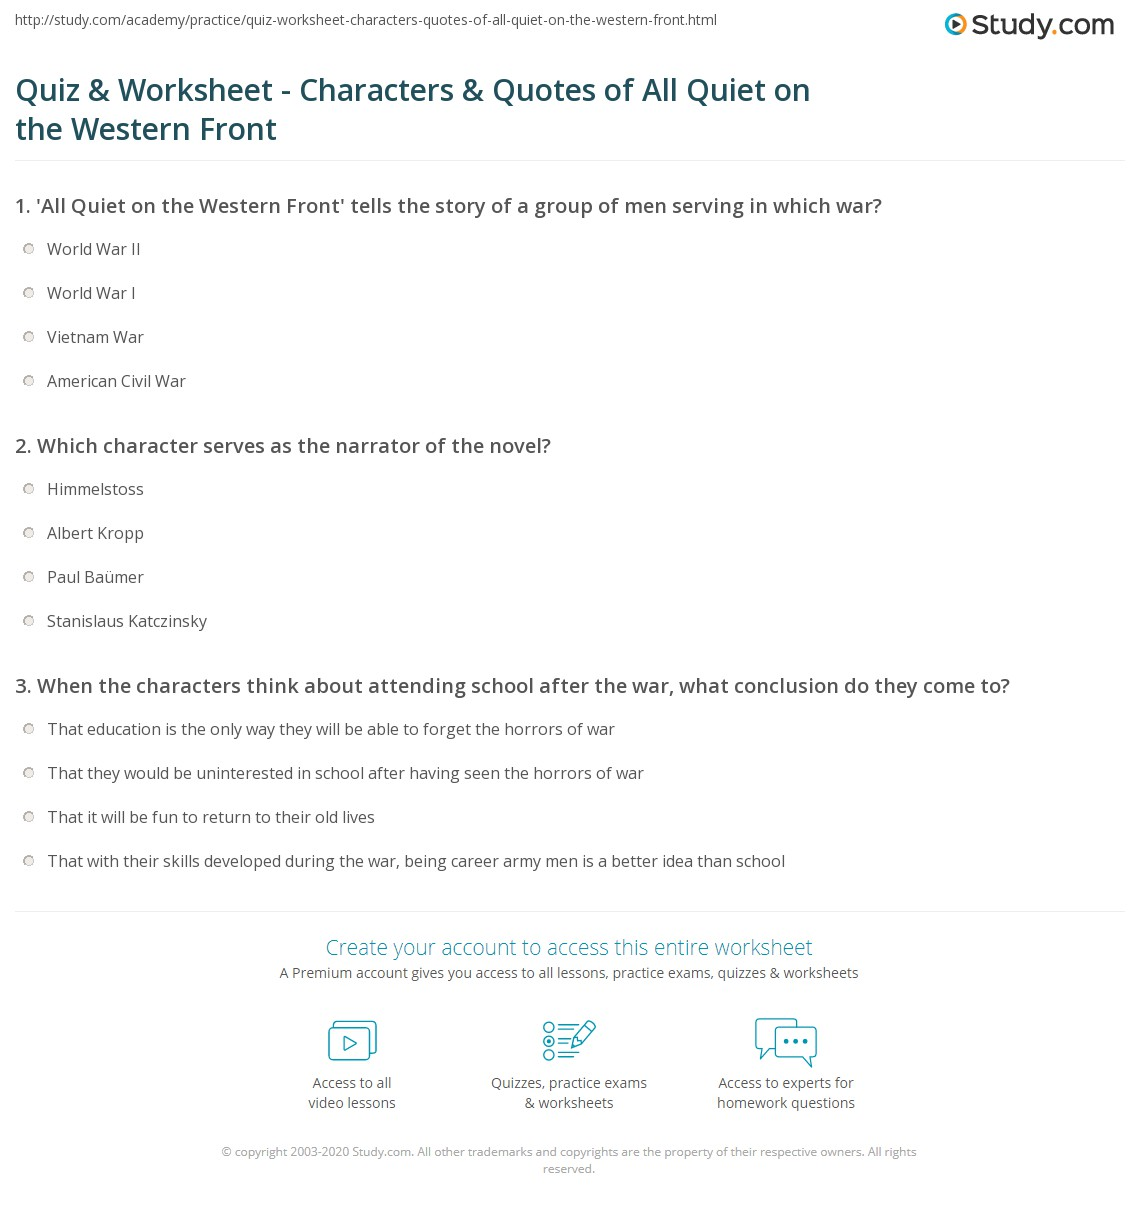 all quiet on the western front worksheet worksheet workbook site all quiet on the western front essay topics paul baumer all quiet on